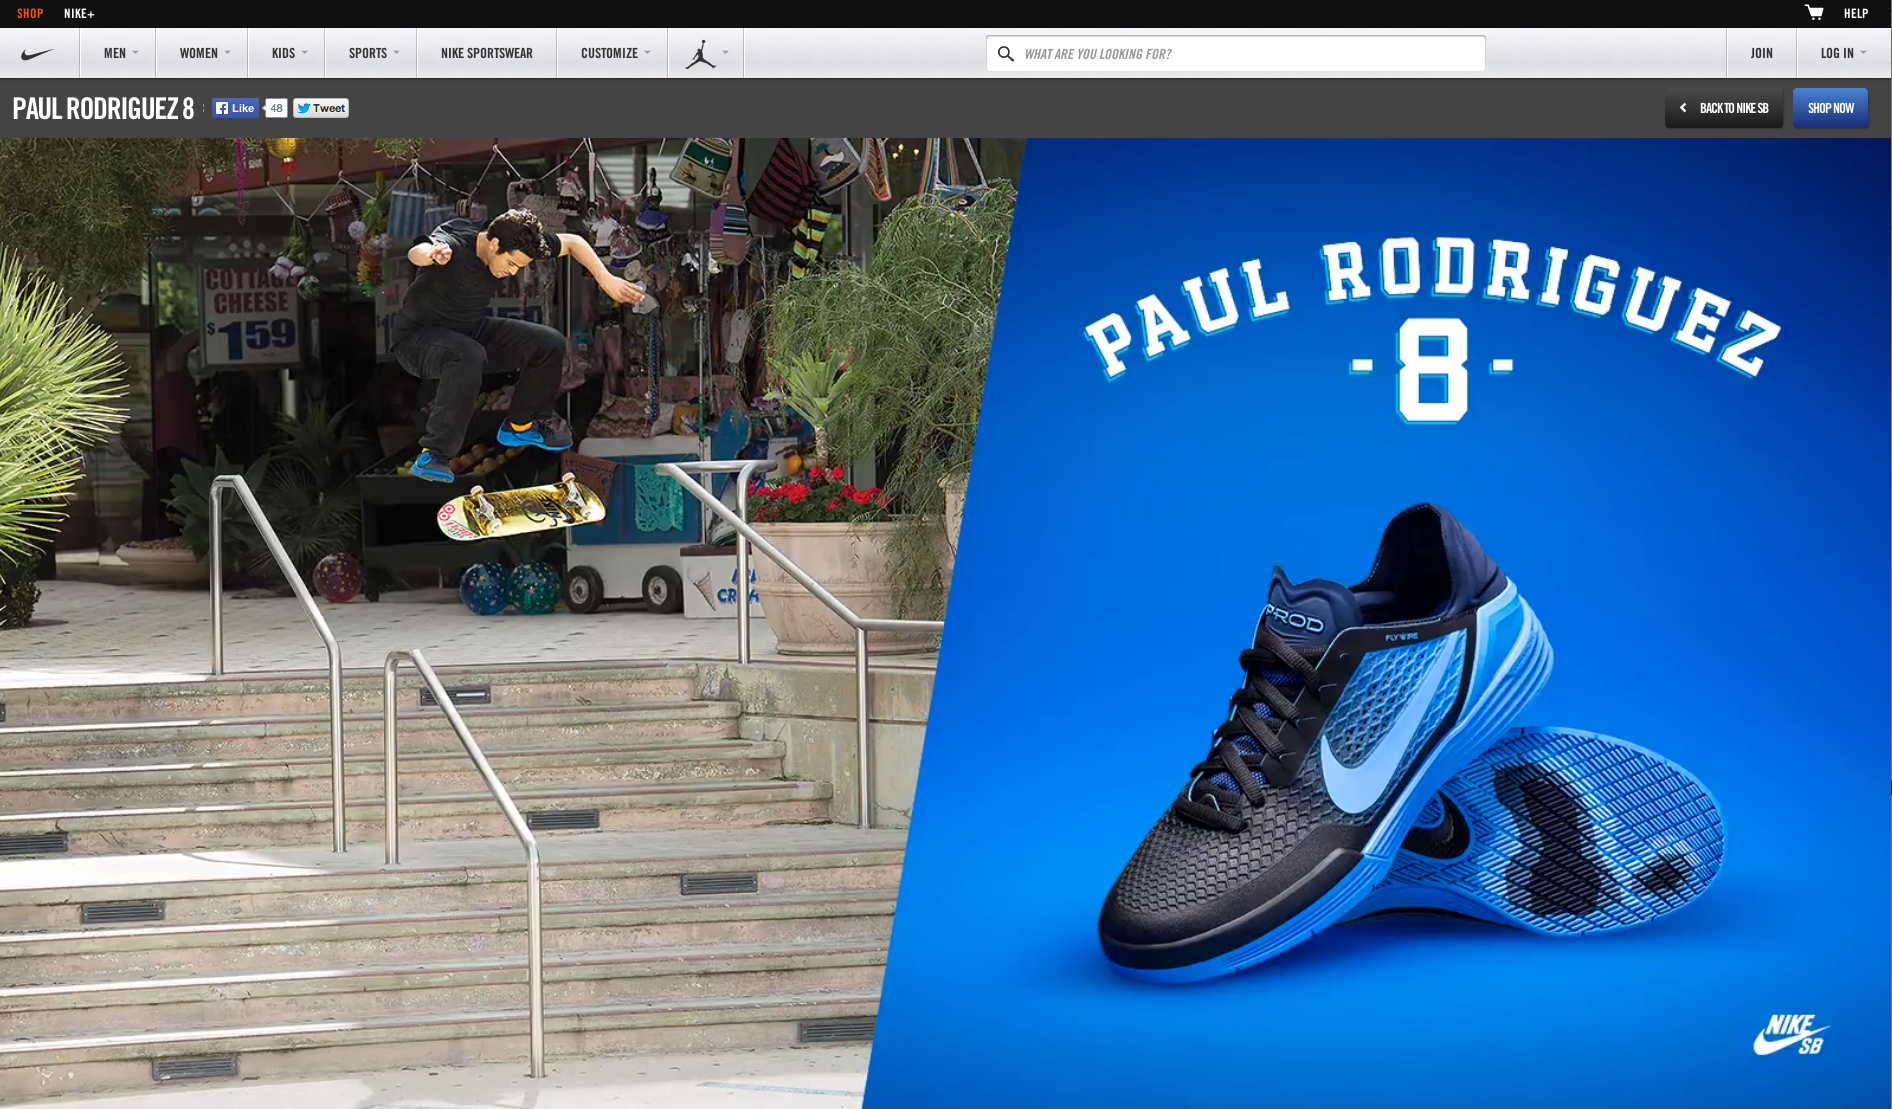 Banners_and_Alerts_and_The_P-Rod_8_from_Nike_SB__Nike_com_and_JBL.png